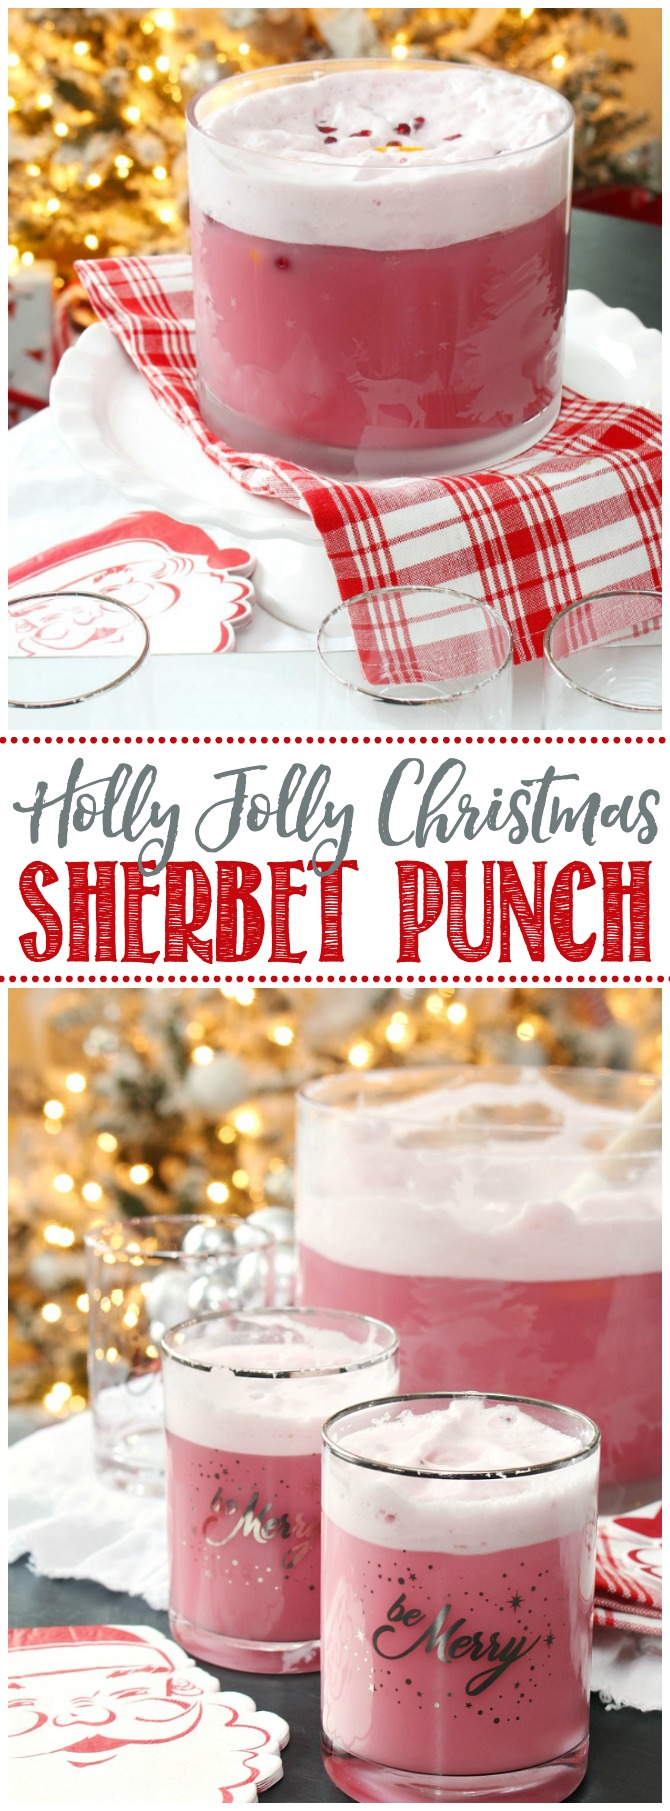 Delicious Christmas sherbet punch in a glass punch bowl with Santa napkins.